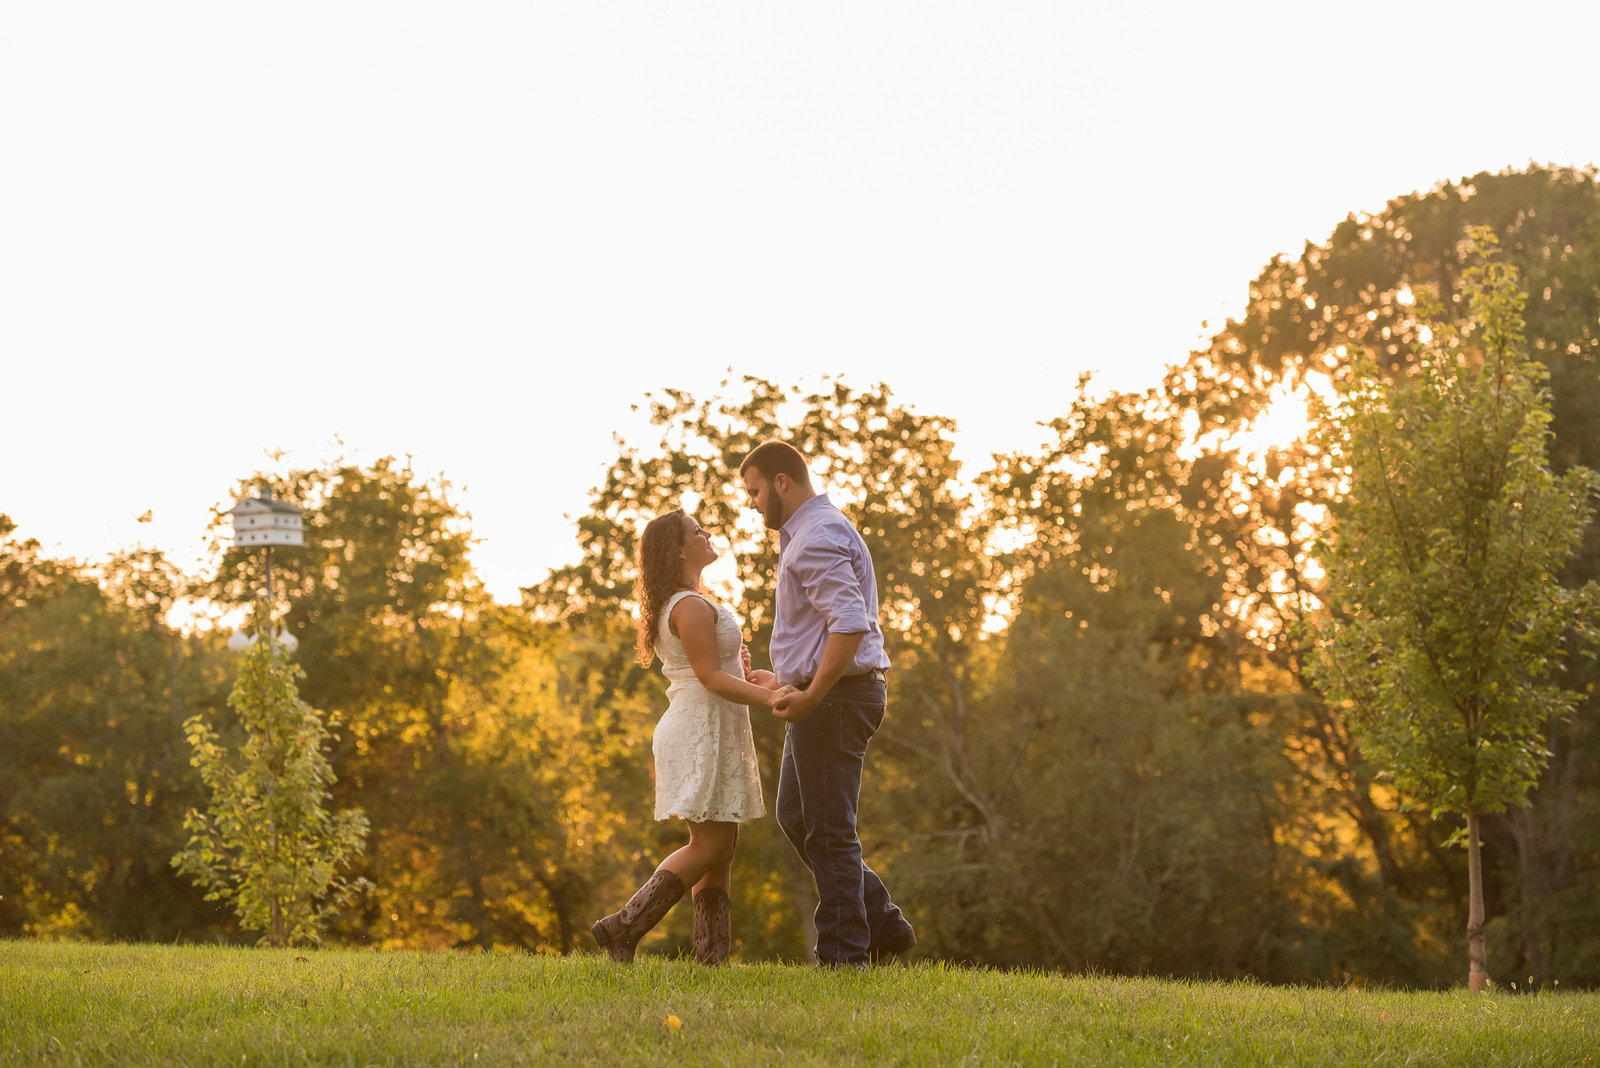 NJ_Rustic_Engagement_Photography154